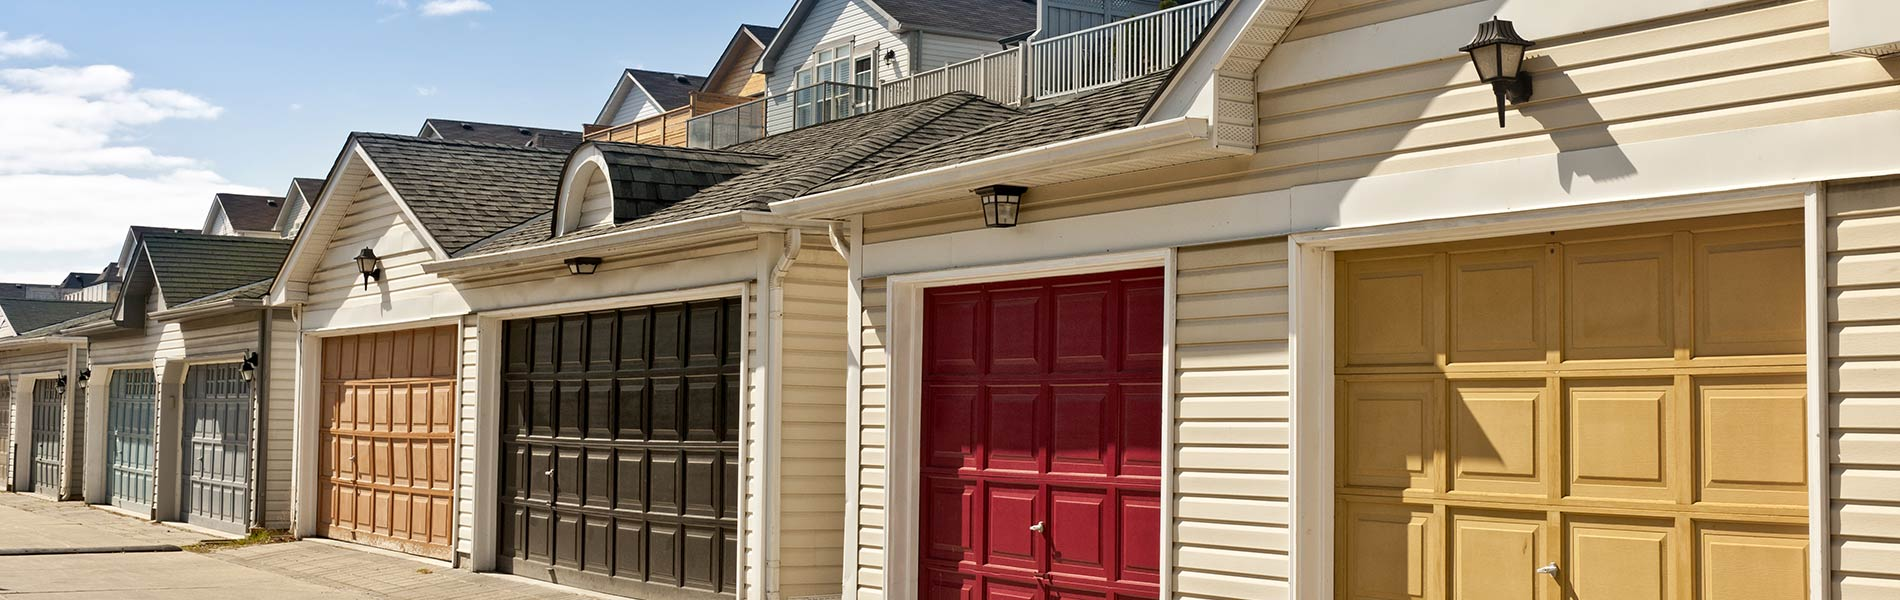 Interstate Garage Door Repair Service, Elizabeth, NJ 908-428-8773